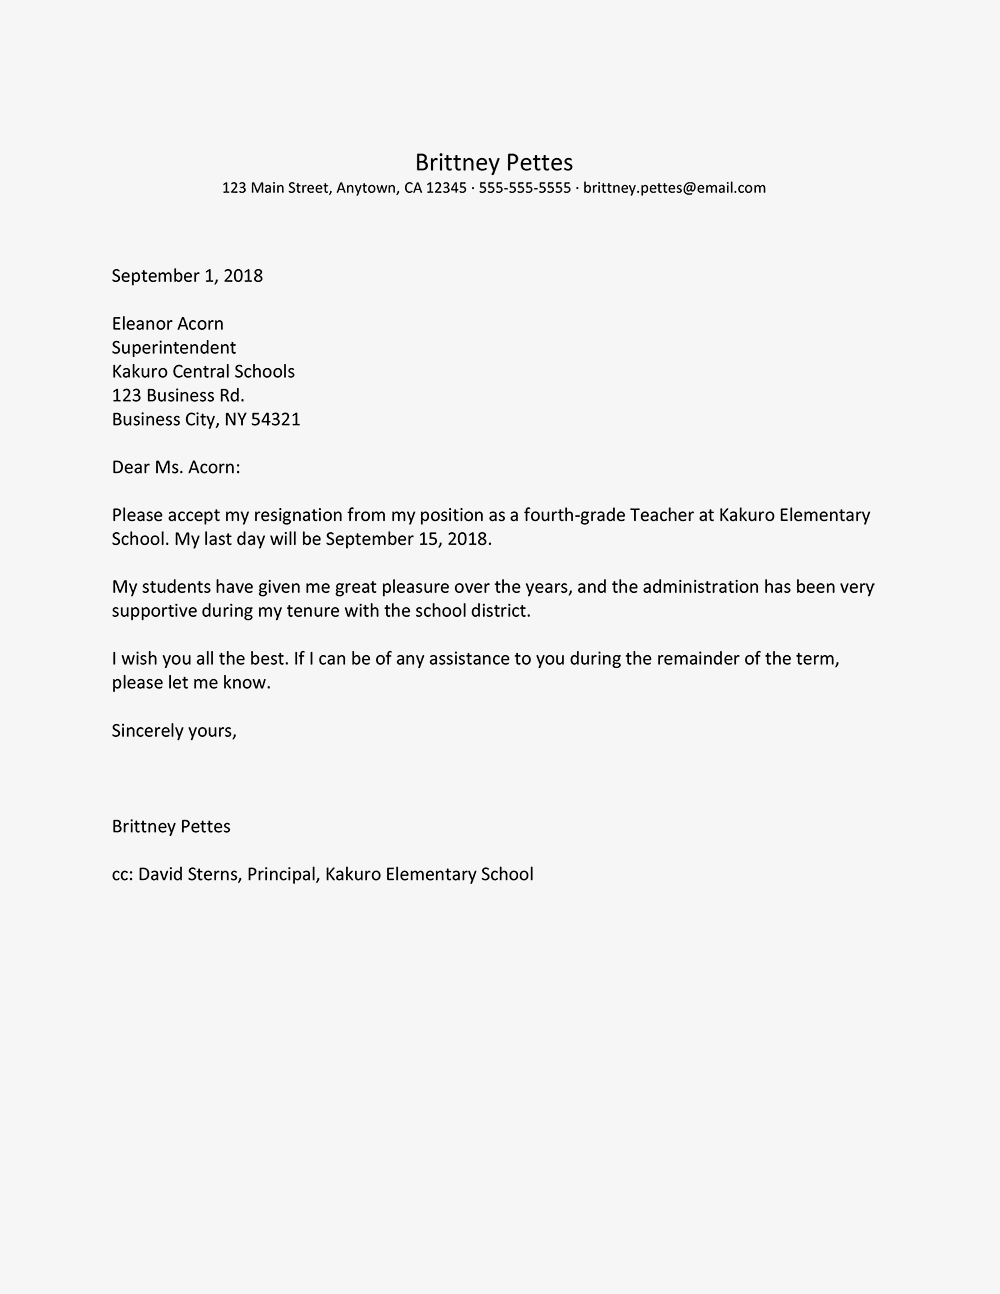 Teacher Resignation Letter Examples